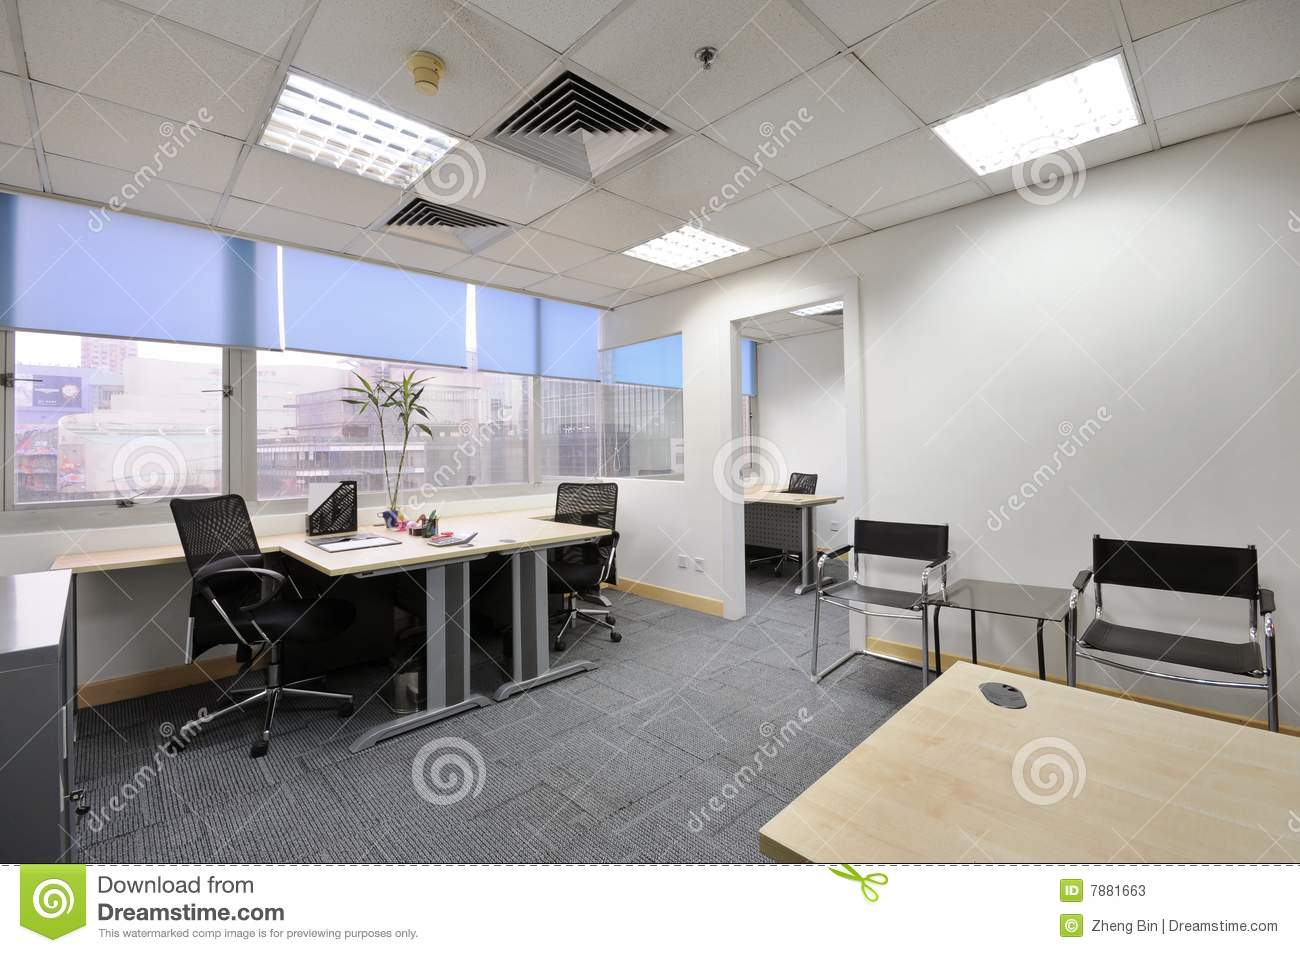 Office room stock photos image 7881663 for Office room pictures